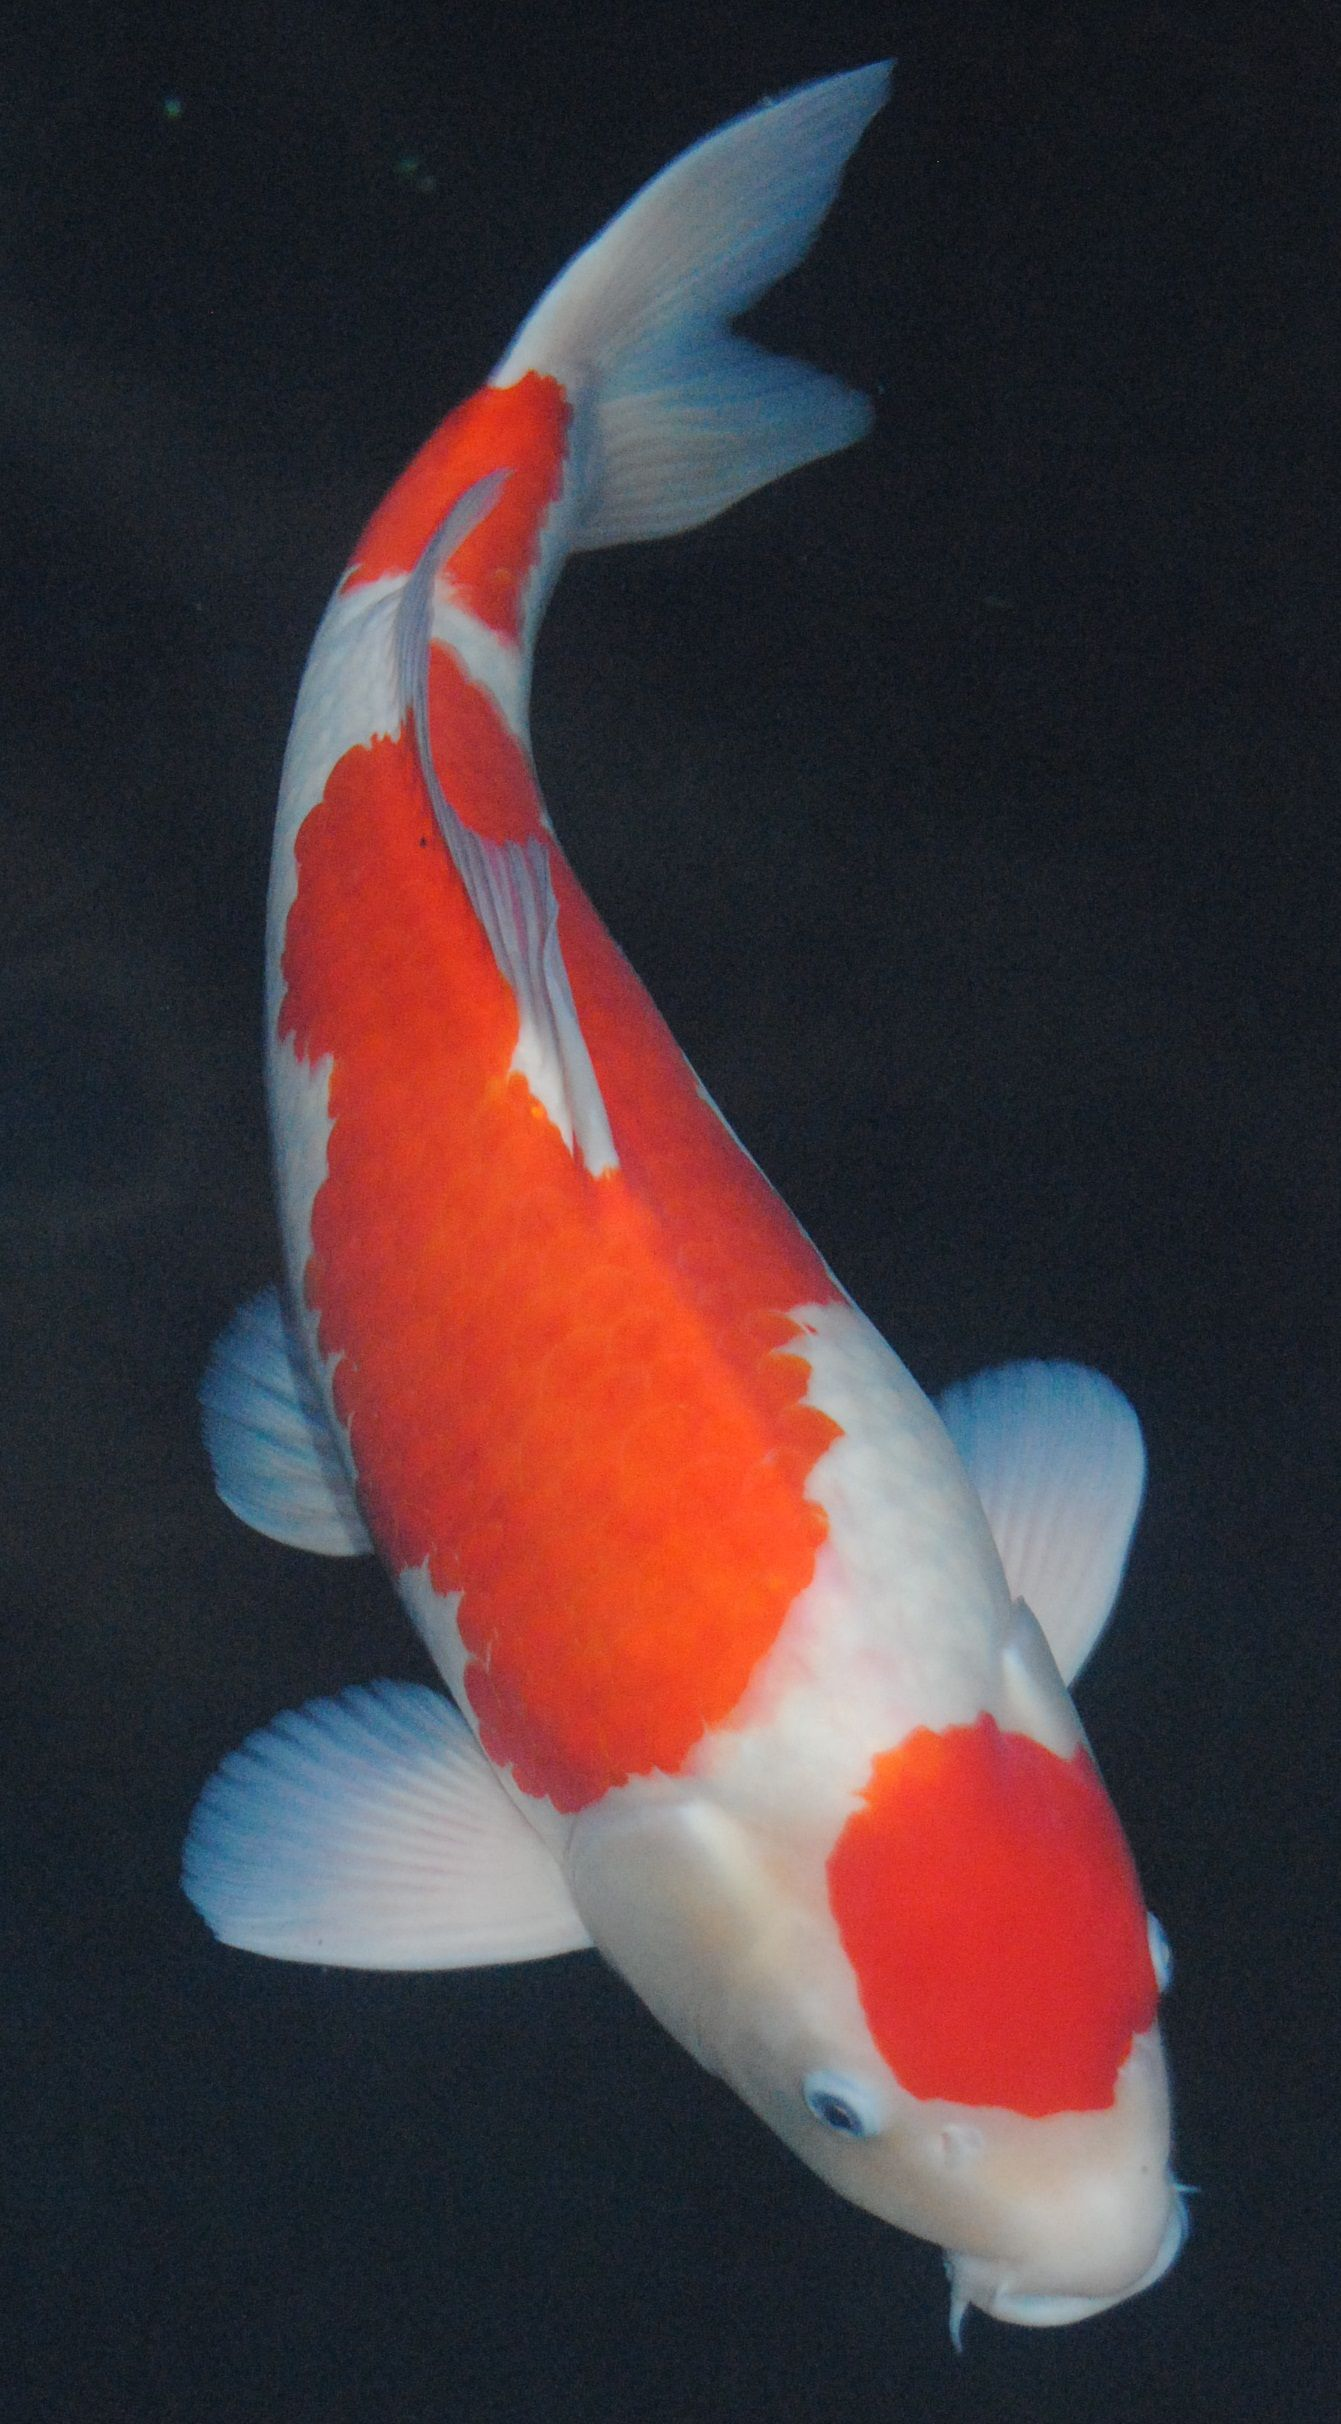 Maruten kohaku isa beautyful japanese koi pinterest koi for Japanese koi carp fish